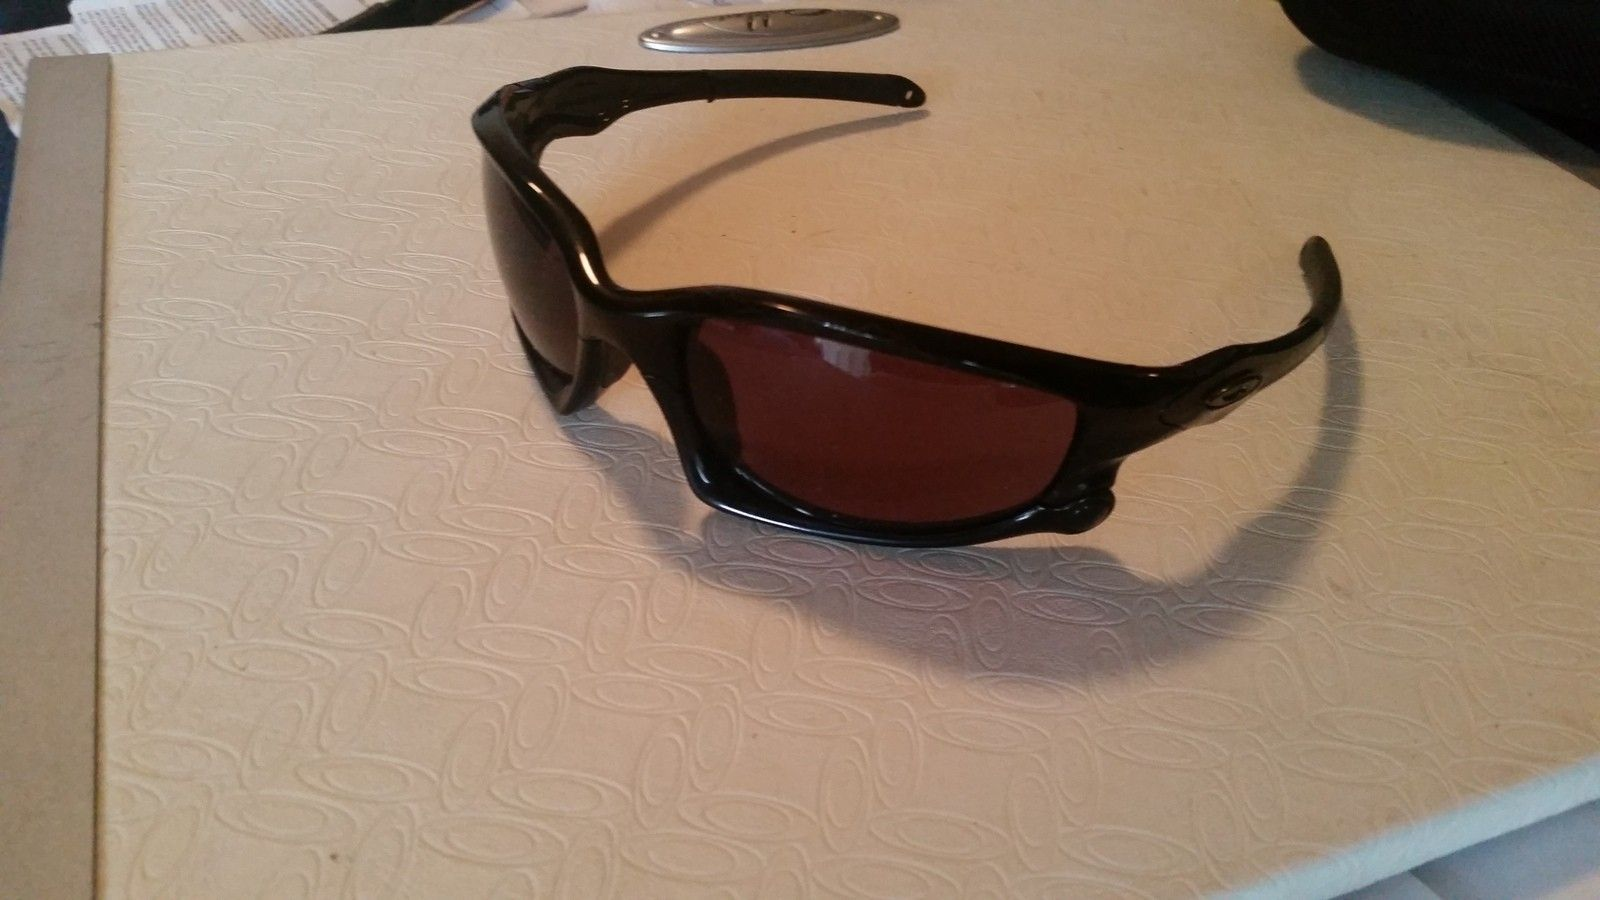 Black Split jacket frame & gray lenses - uploadfromtaptalk1439676009800.jpg